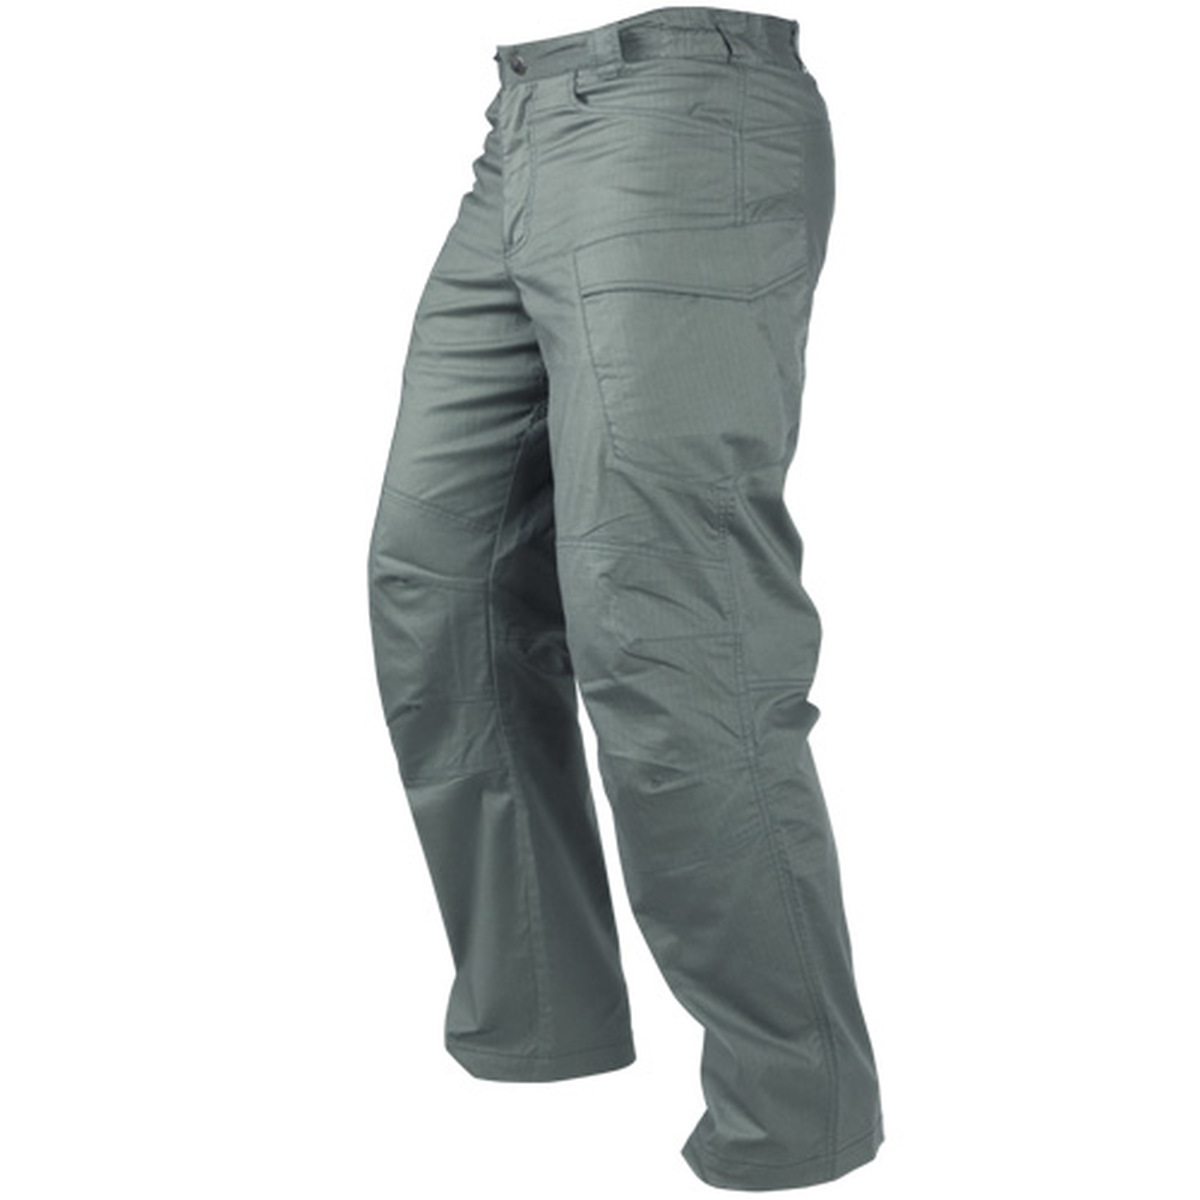 Stealth Operator Pants, Poly-Cotton-Spandex